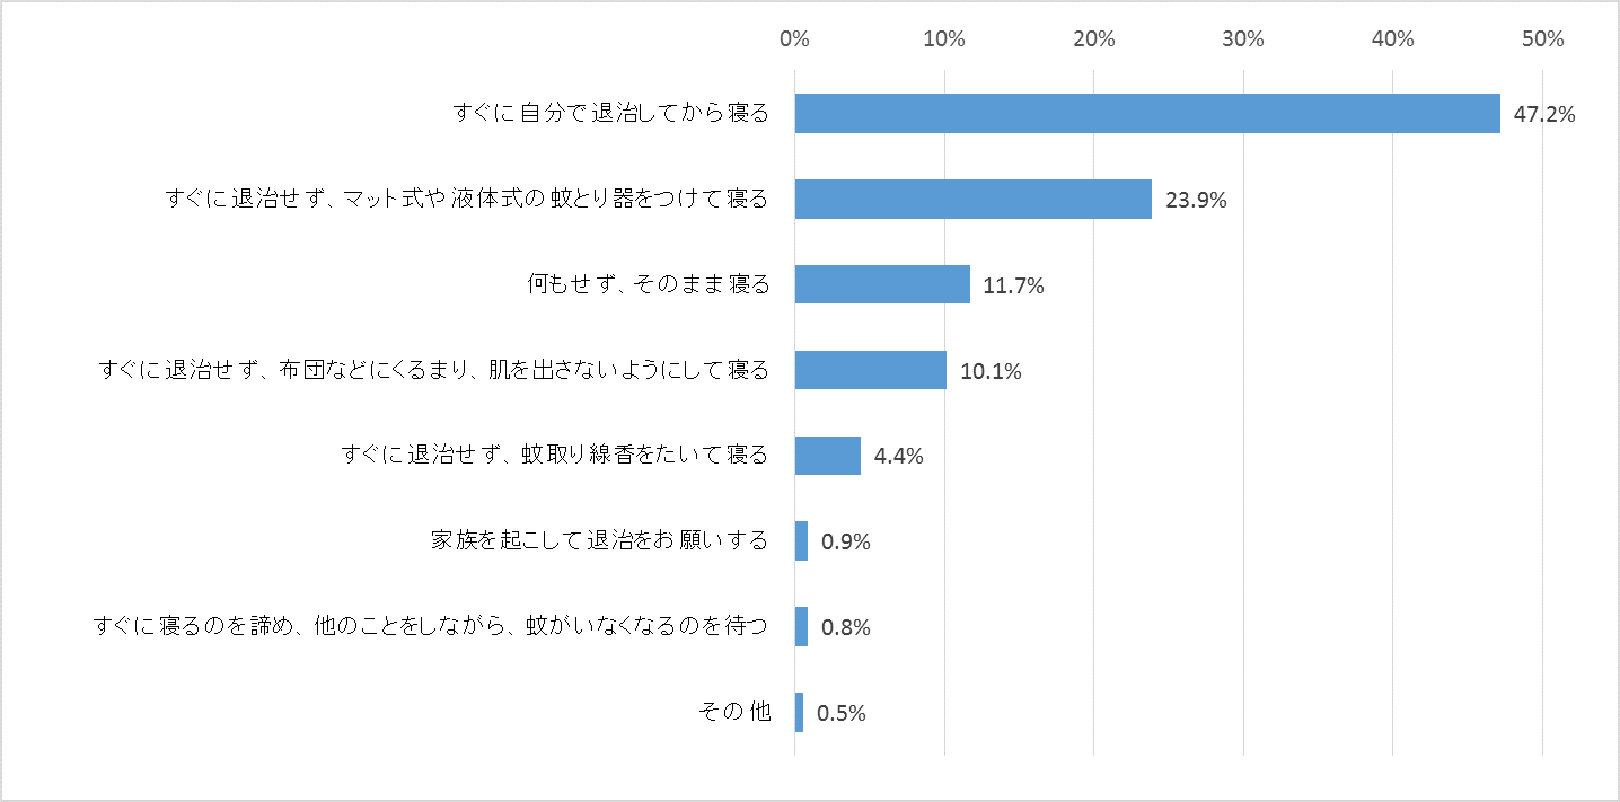 201808-03-fig-03.png